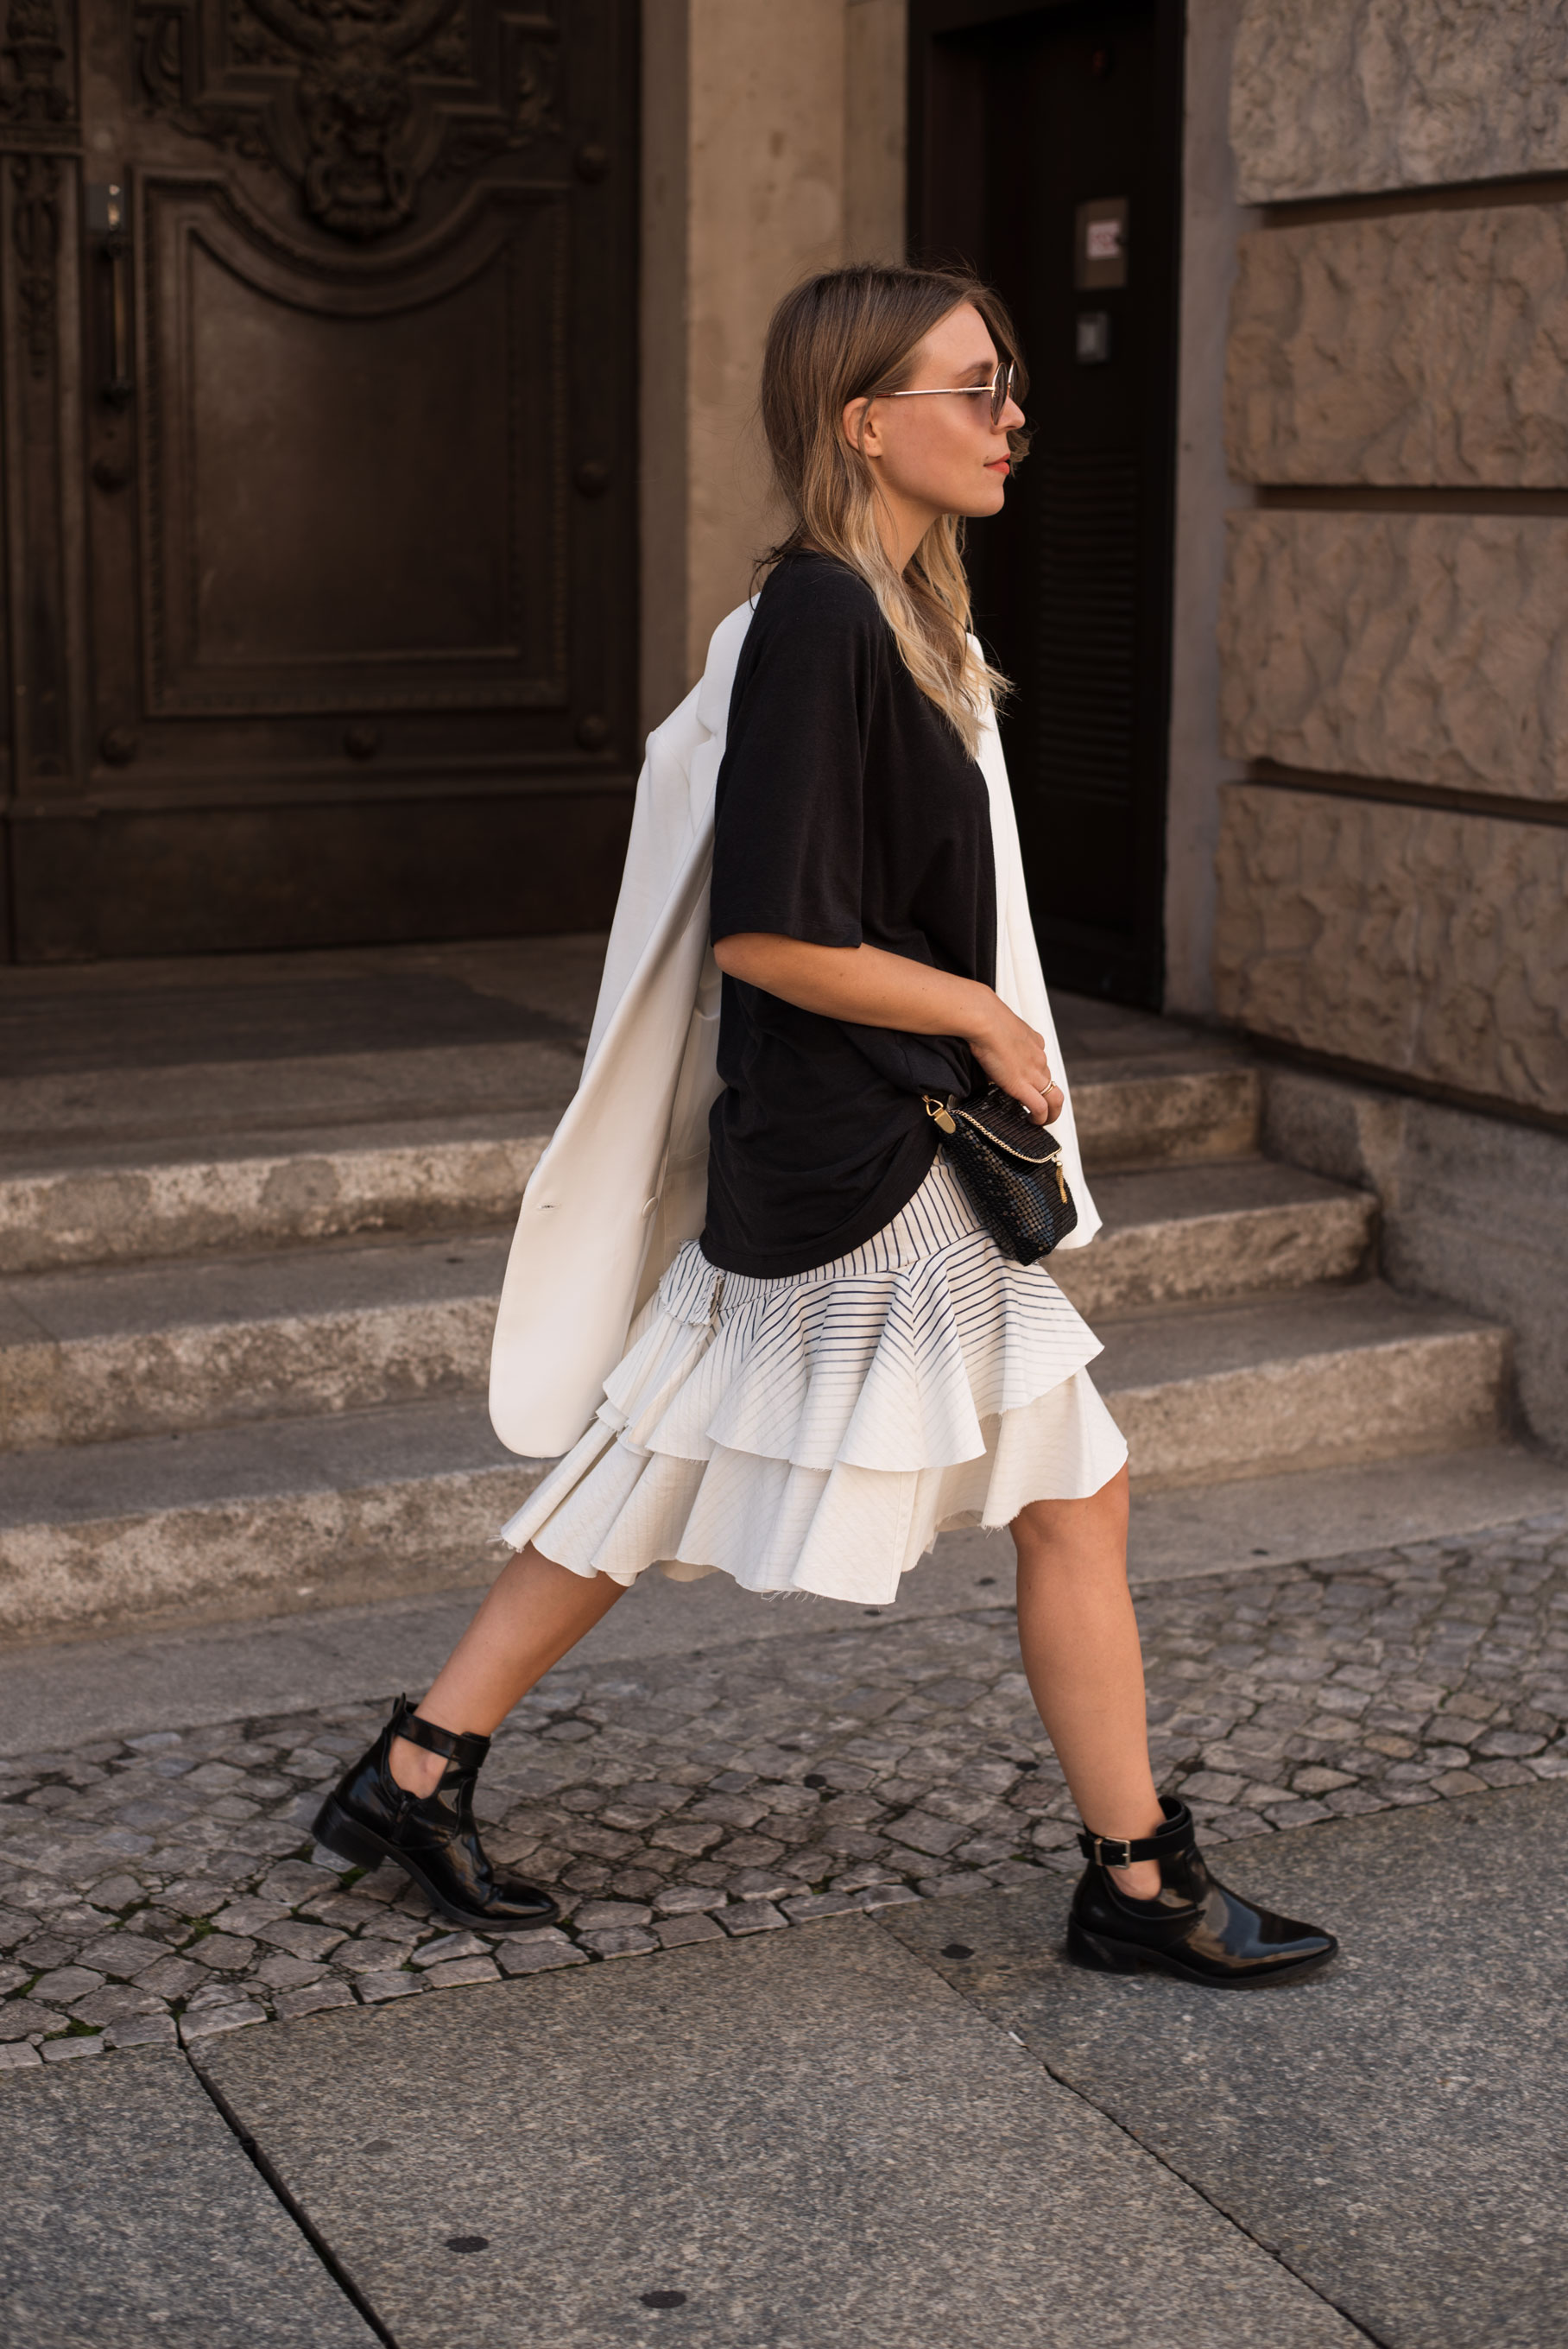 Denim Volant Skirt Rüschen Black and White Guess Adidas Streetstyle Fashion Week Berlin Casual Chic Sariety Modeblog Fashionblogger Heidelberg_12